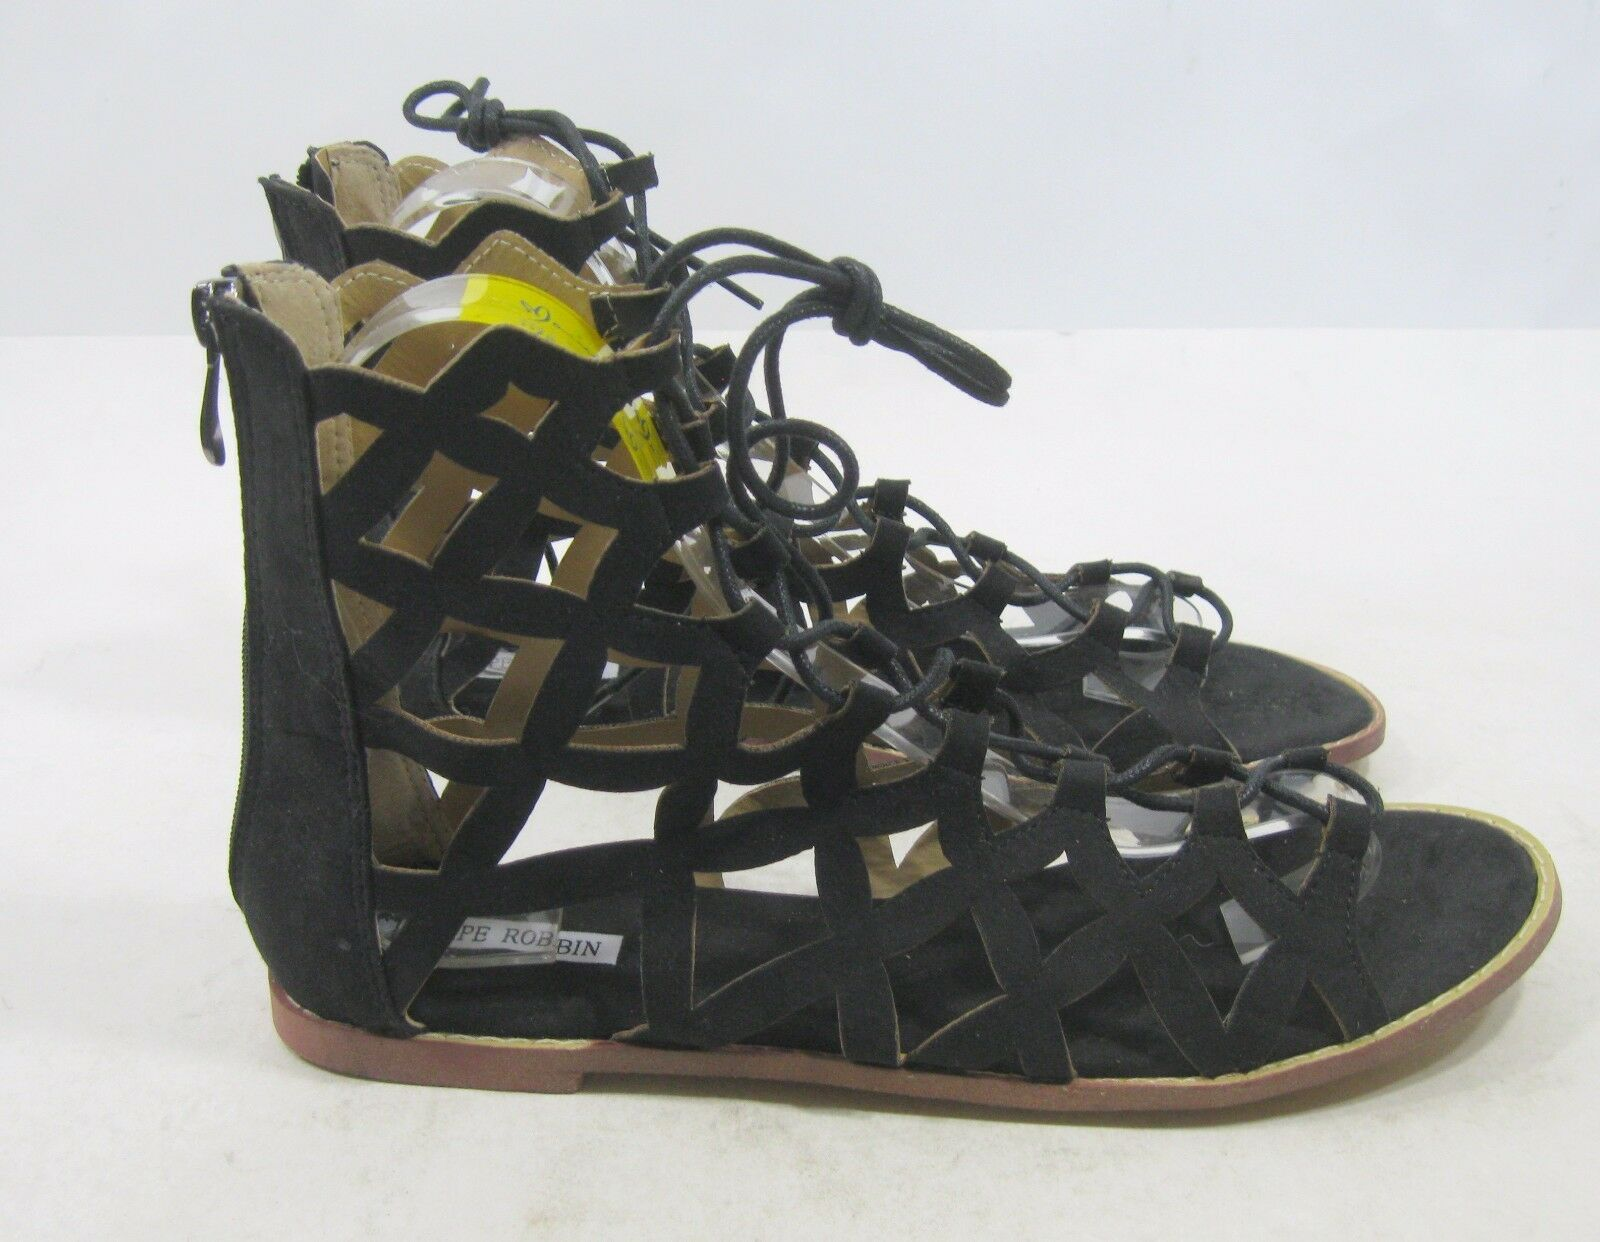 Cape Robbin Black Womens shoes Roman Gladiator Lace Up Sexy Sandals Size 7.5